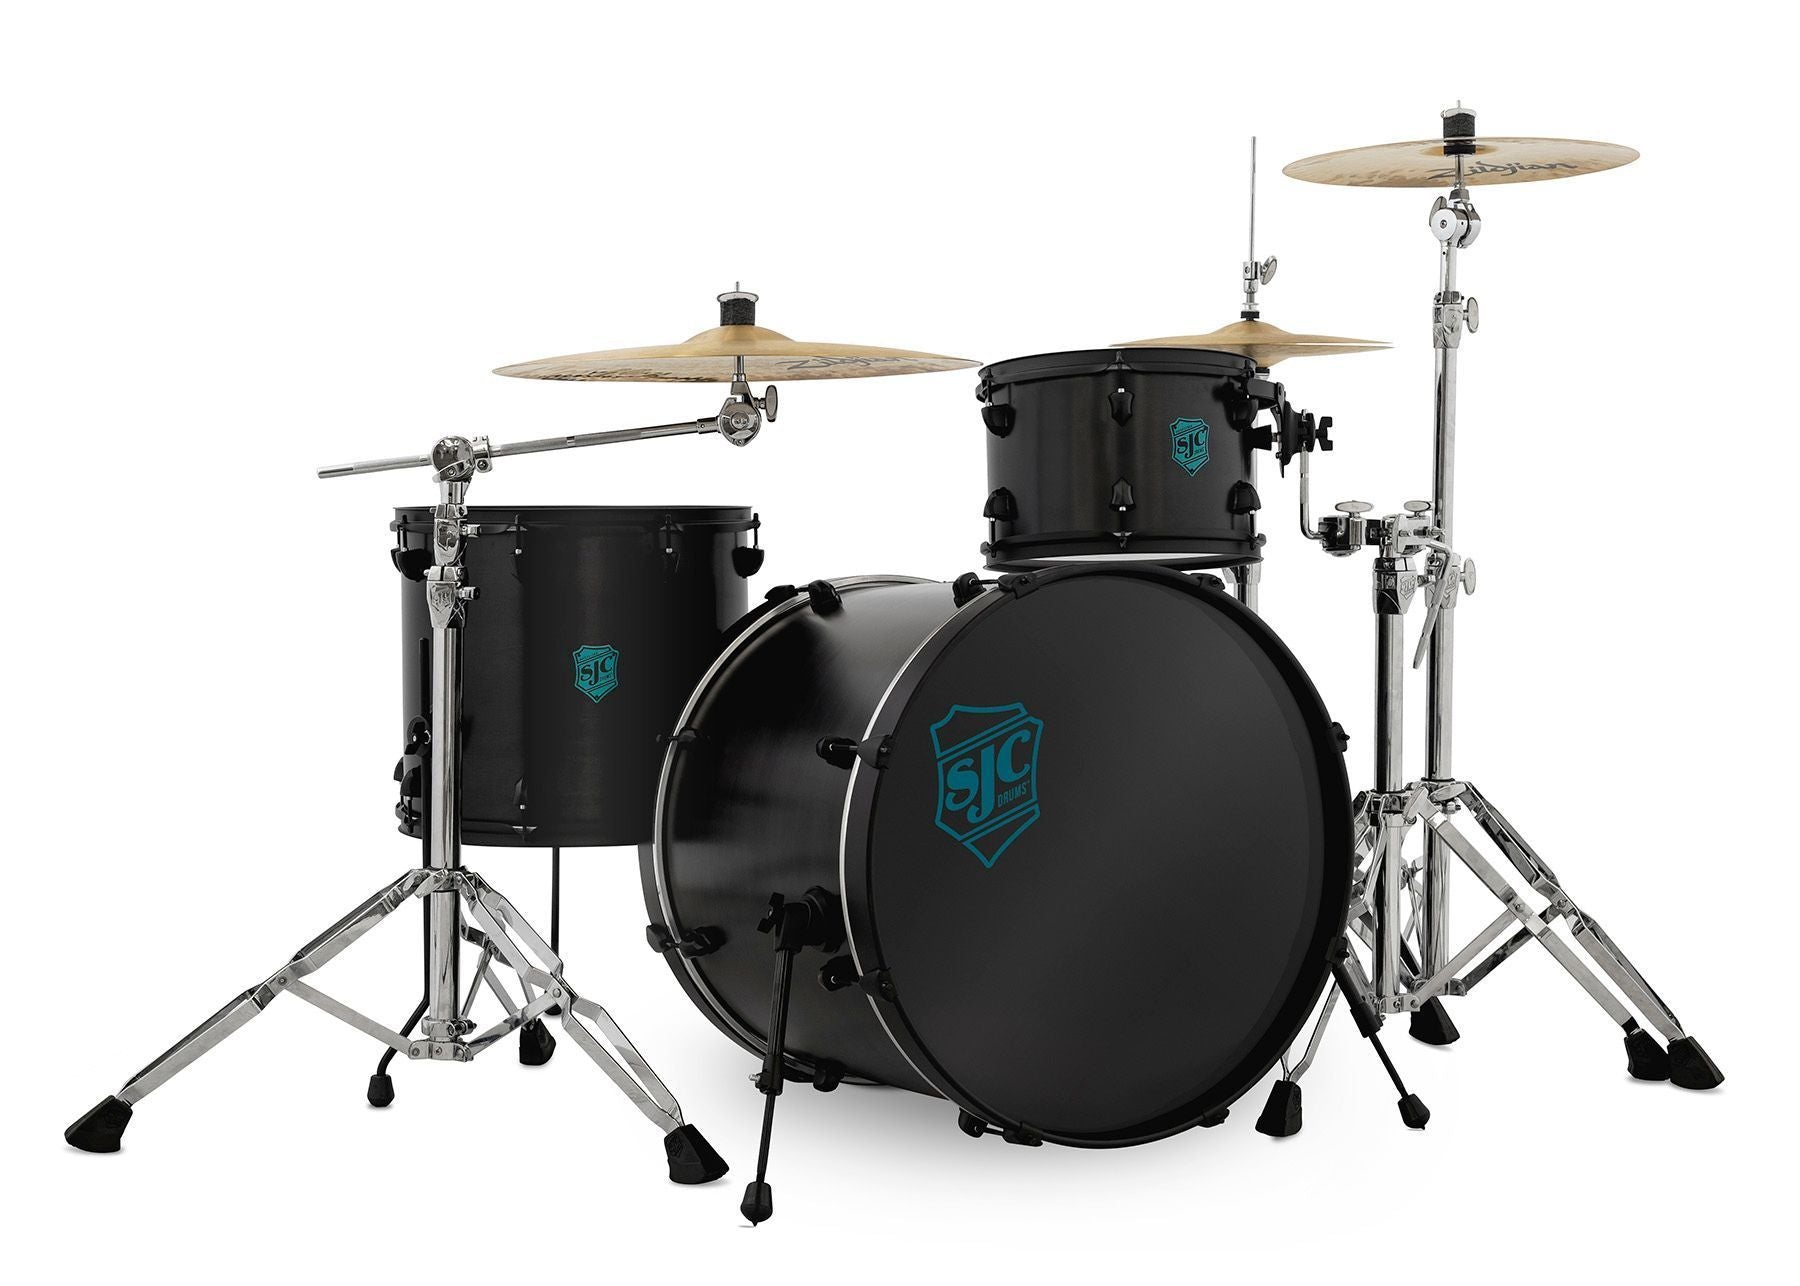 SJC Custom Drums - Built with passion, played with pride